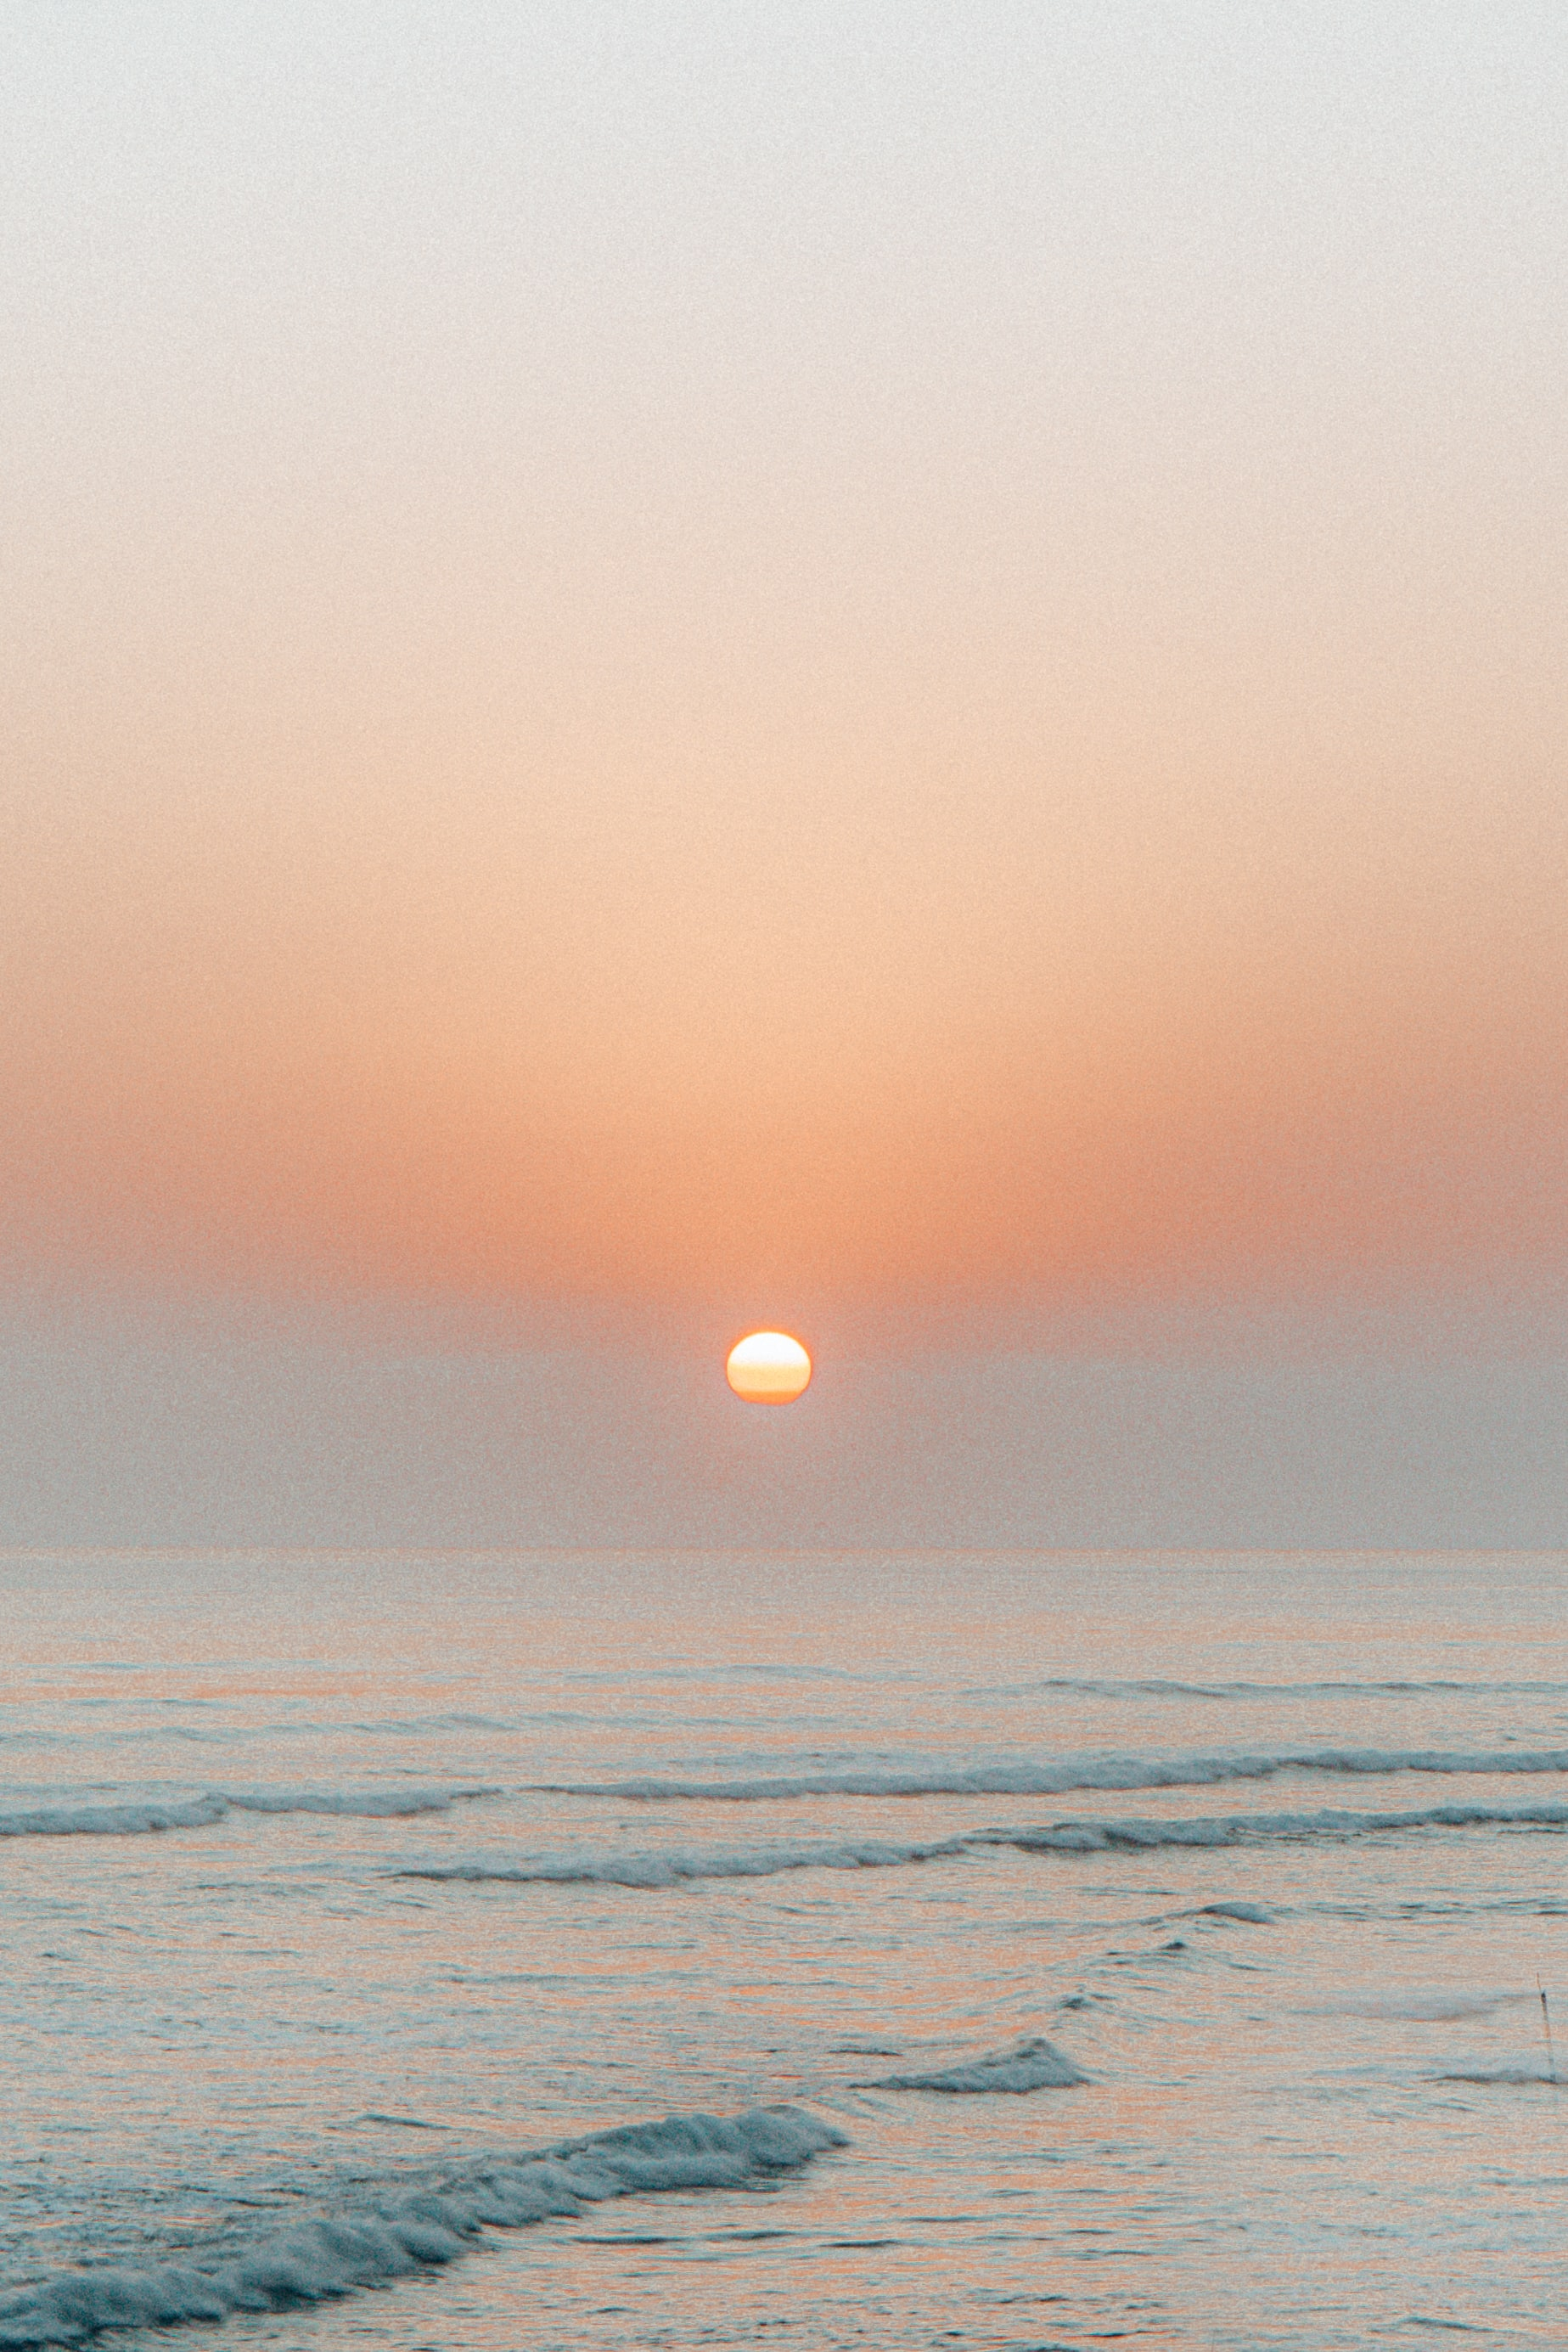 Download mobile wallpaper Nature, Sunset, Sea, Sun, Waves for free.